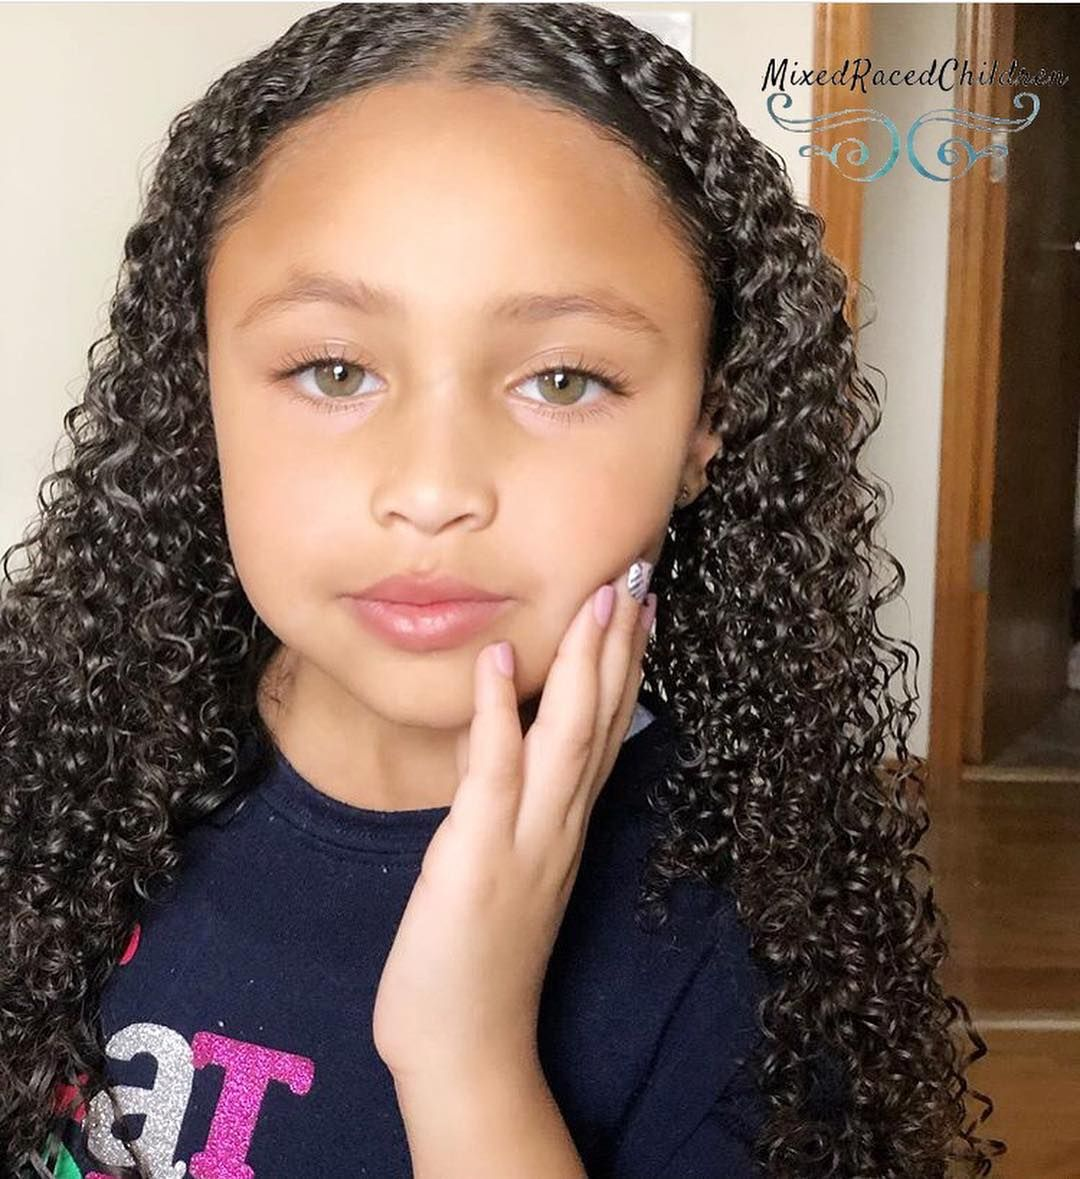 Mixedracedchildren On Instagram Kaydree 6 Yrs Old African American Caucasian German And Hispanic Mexican Girl With Green Eyes Mixed People Mixed Kids